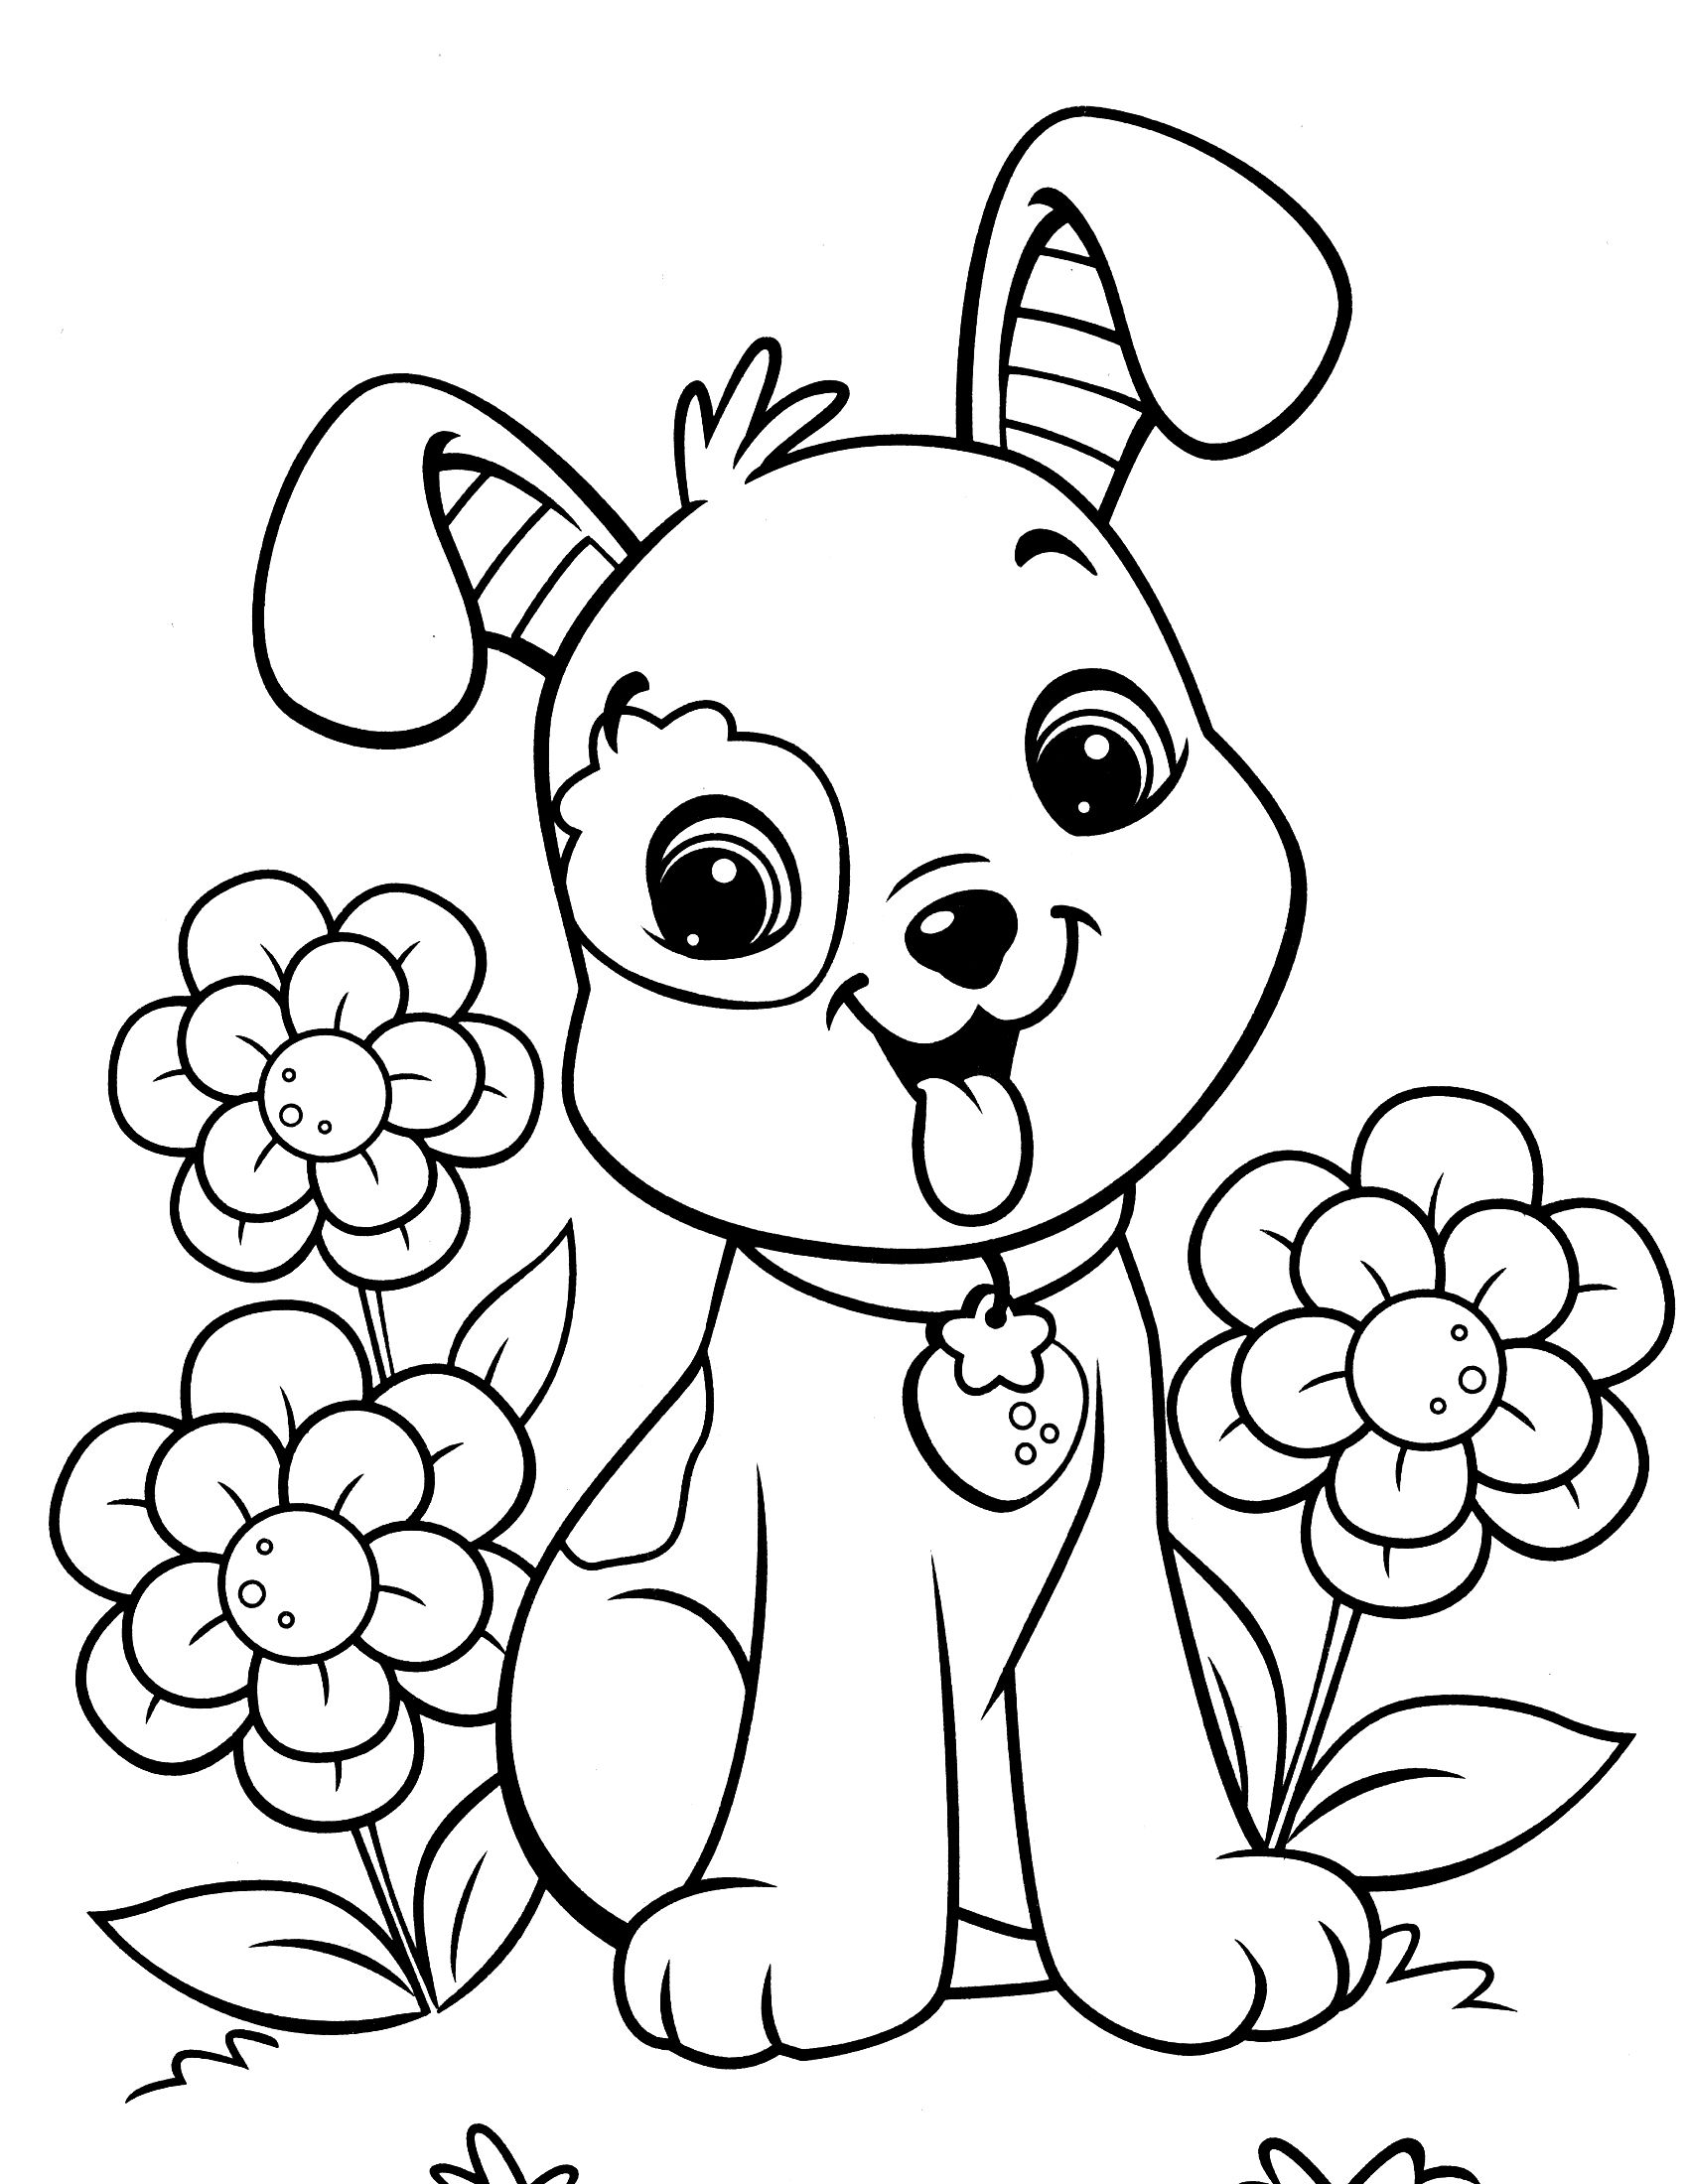 childrens coloring pages with puppies - photo#25